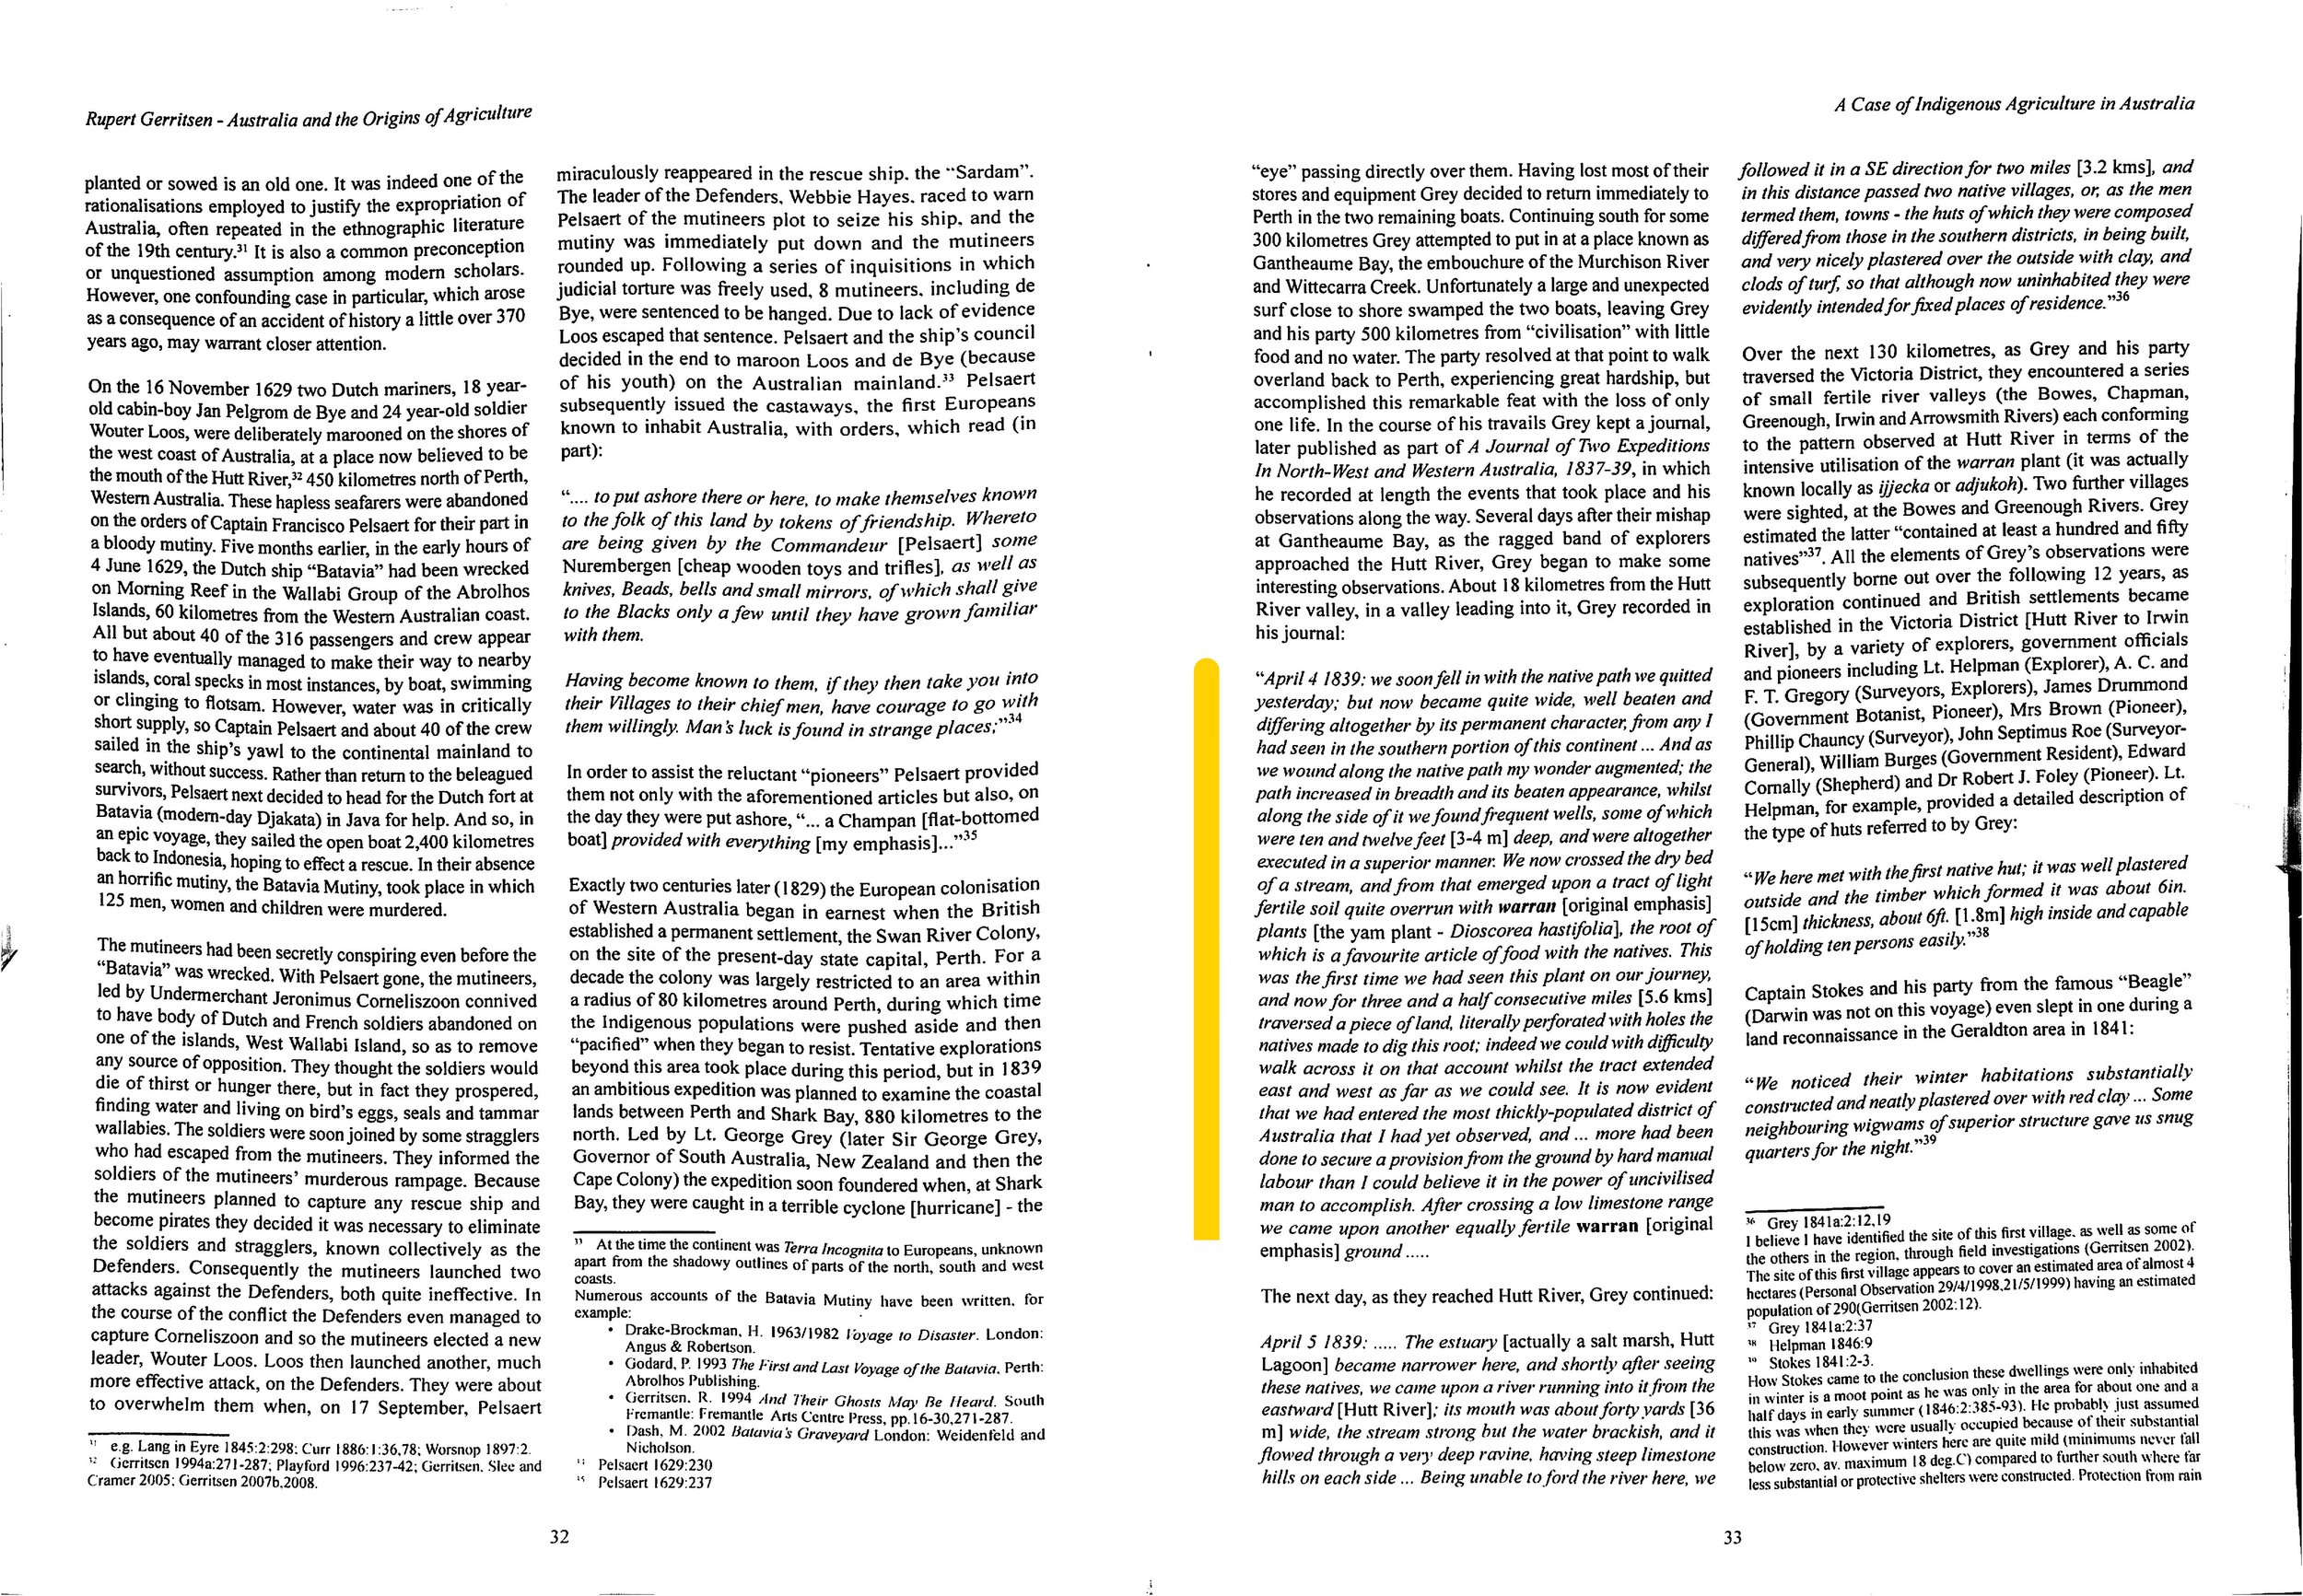 """Figure 1 : Highlighted in yellow, the page 33 section describing the explorer George Grey's description of the """"cultivated"""" yam fields, that Mr Pascoe has transcribed to his  Dark Emu  account (2018 reprint, p 17). From the second paragraph of first column of page 32, Gerritsen describes in detail the circumstance of the Dutch presence on the west coast of Australia some 200 years earlier."""